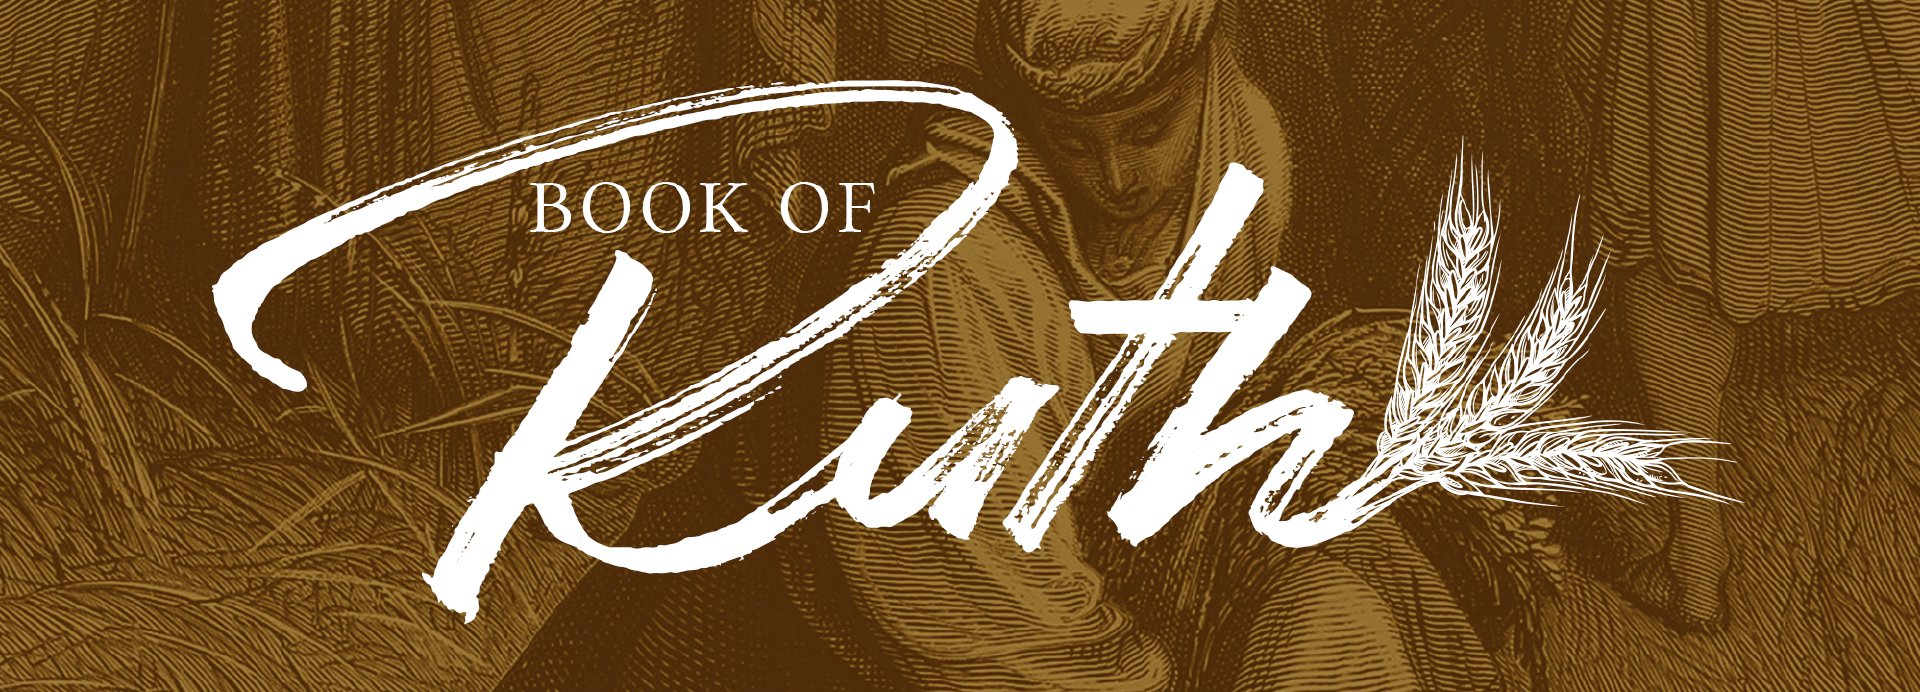 Book of Ruth - Calvary Church